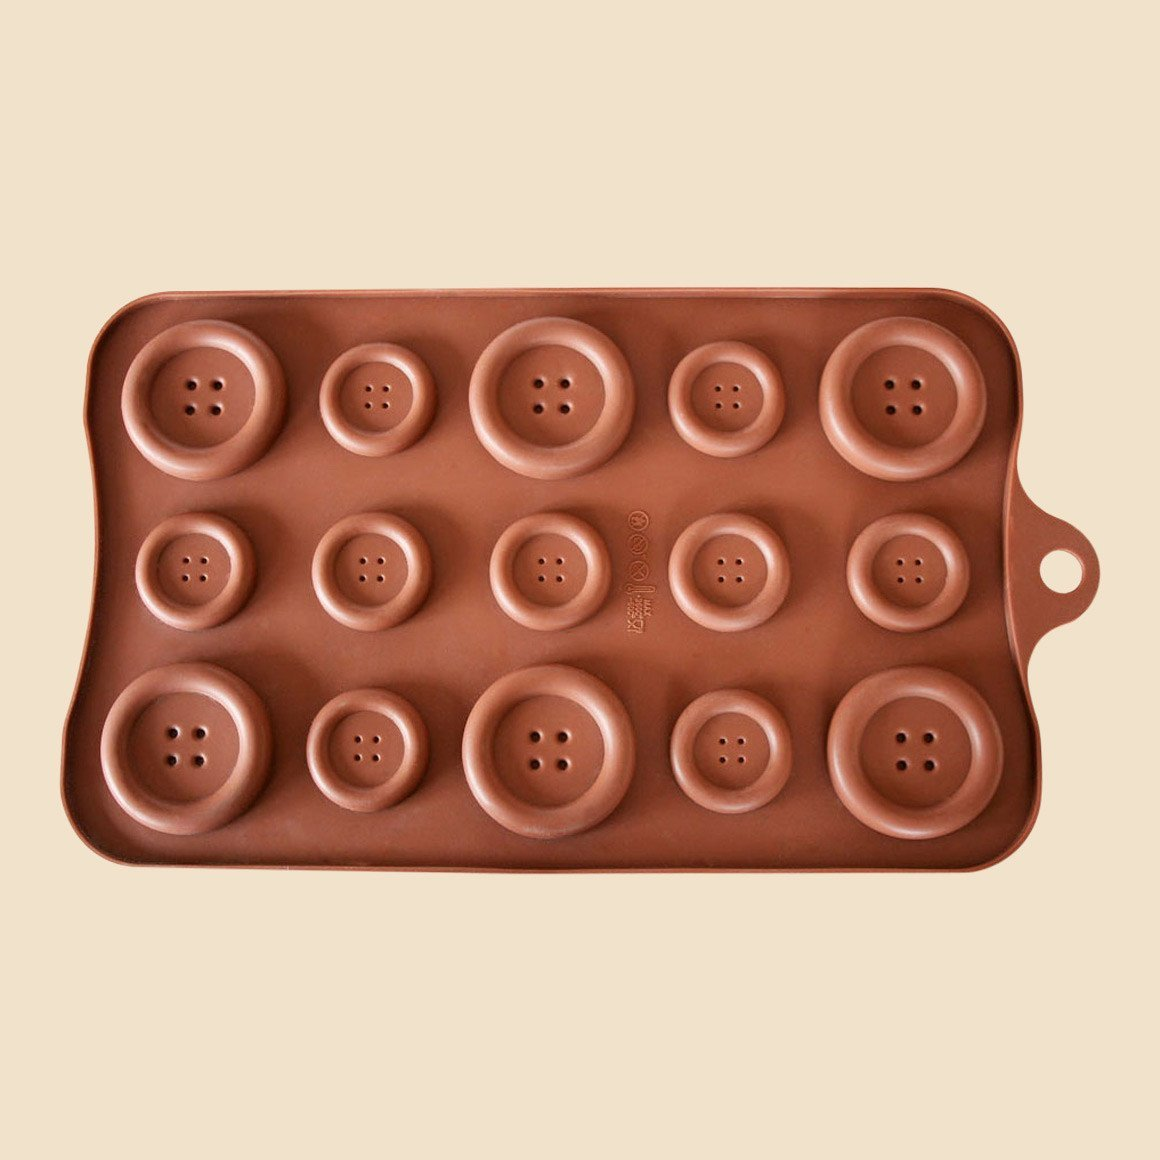 Giant Buttons Chocolate Mould